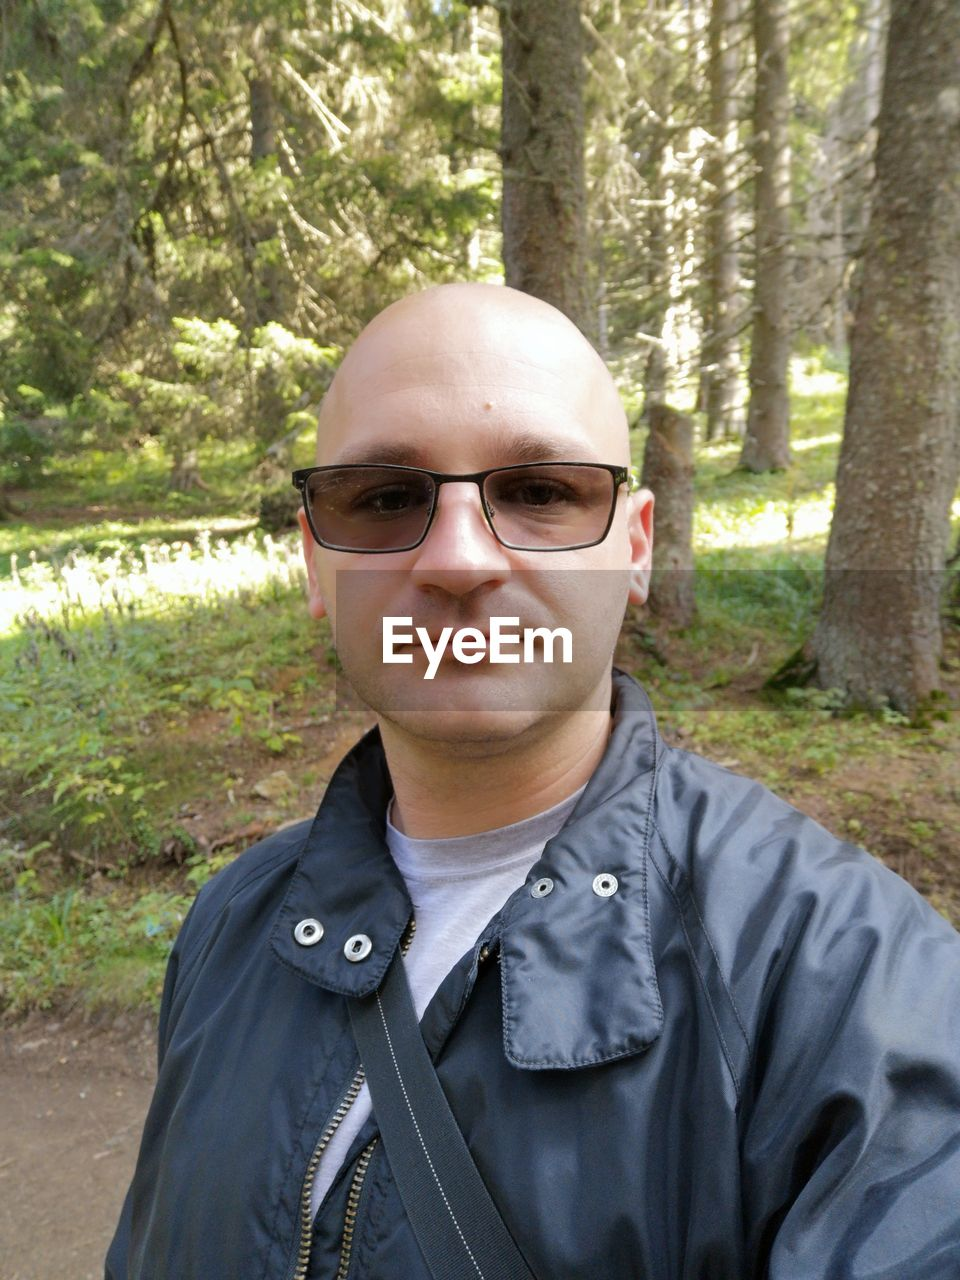 portrait, looking at camera, tree, one person, glasses, plant, real people, lifestyles, sunglasses, headshot, leisure activity, land, front view, smiling, fashion, mid adult, adult, forest, mature adult, mature men, outdoors, leather